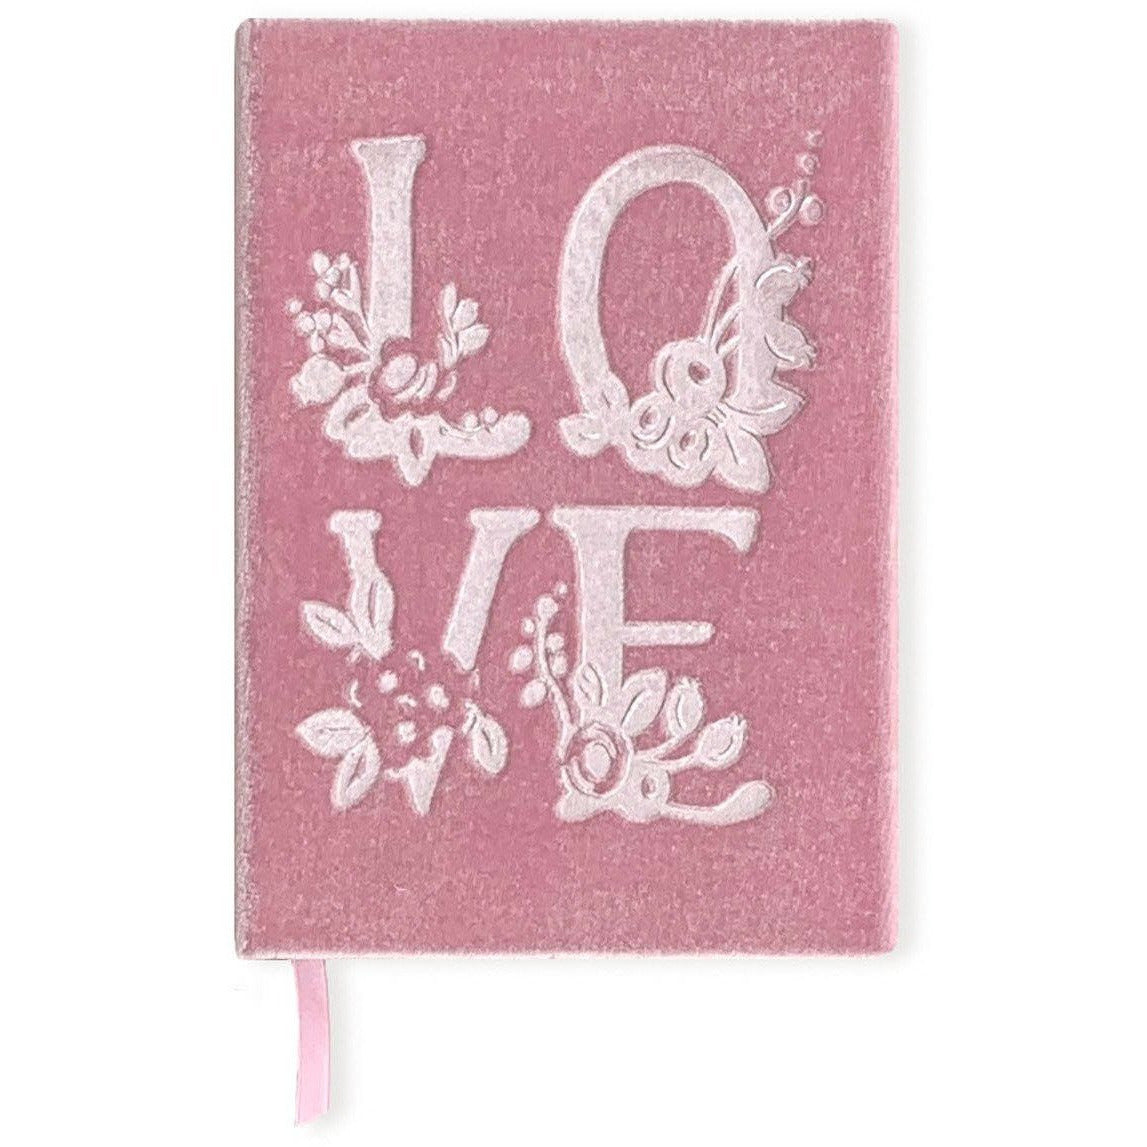 Love-Themed Silk Velvet-Covered Lined Notebook with Fabric Bookmark - The First Snow